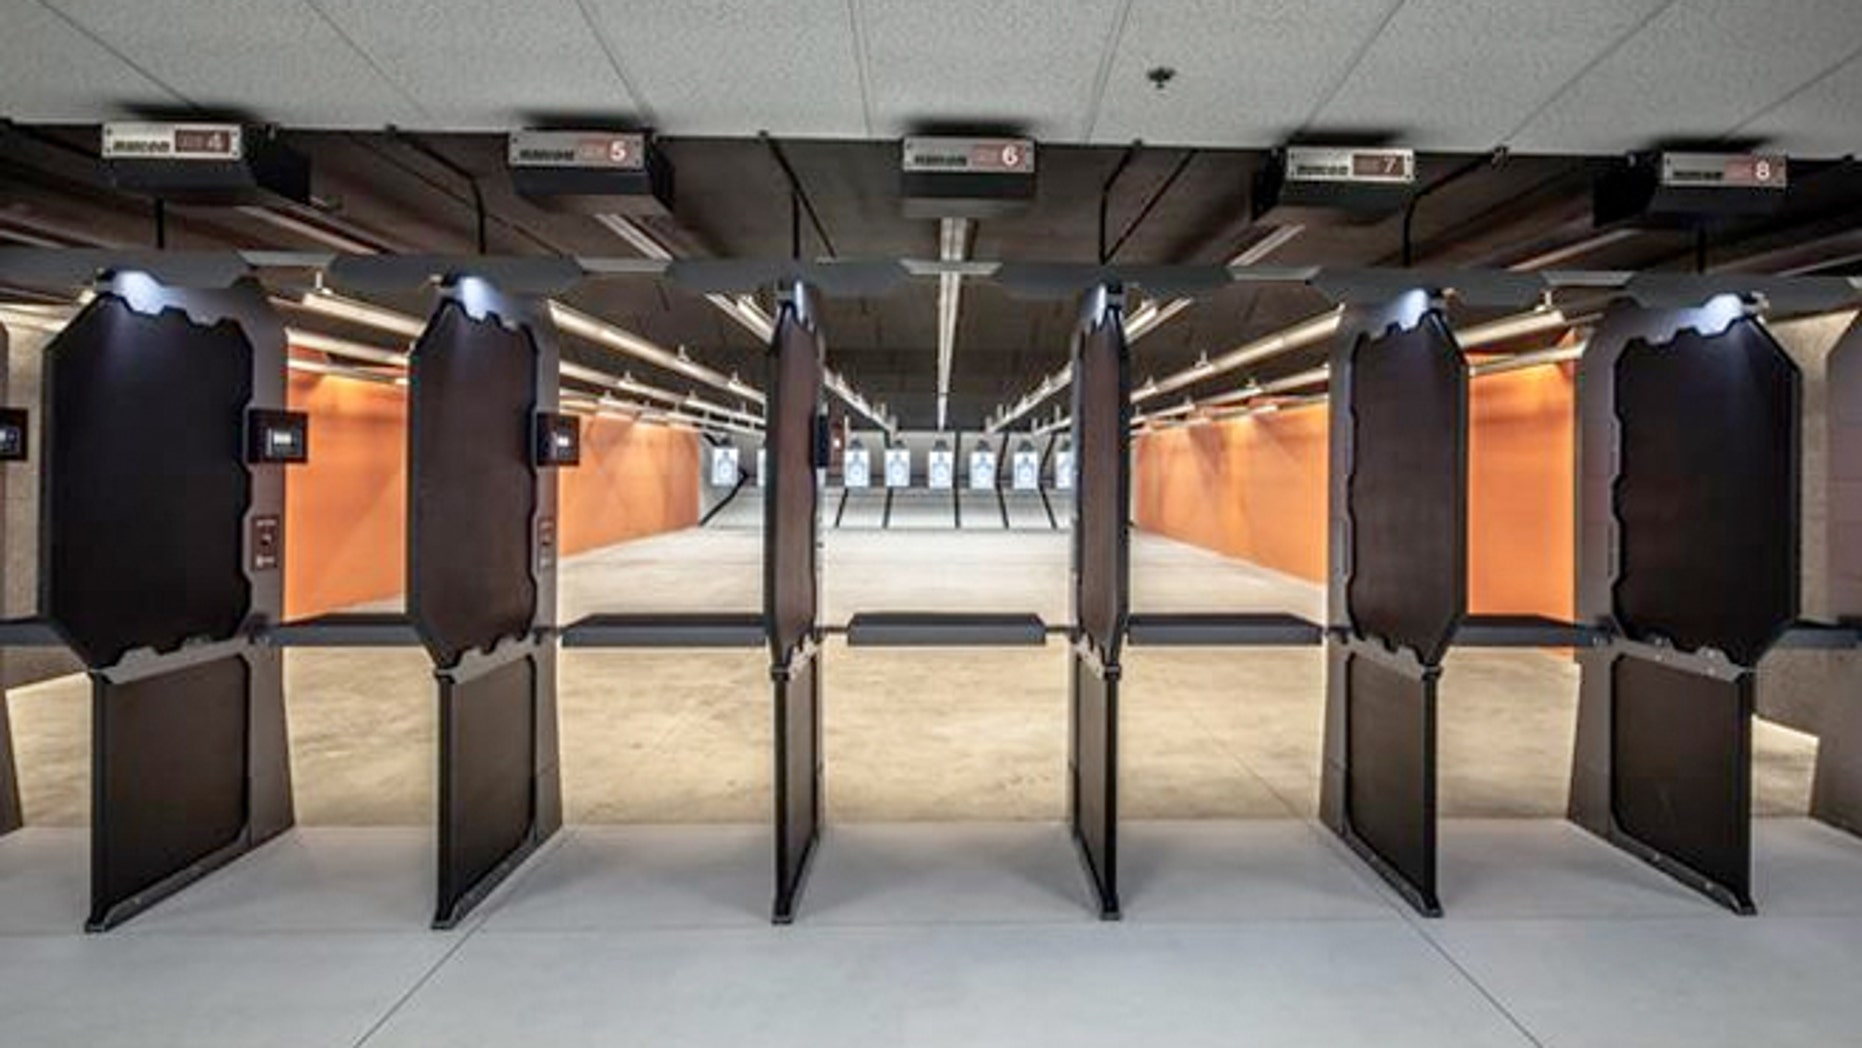 Oklahoma City Council voted Tuesday 6-3 to approve the liquor license for Wilshire Gun Range.